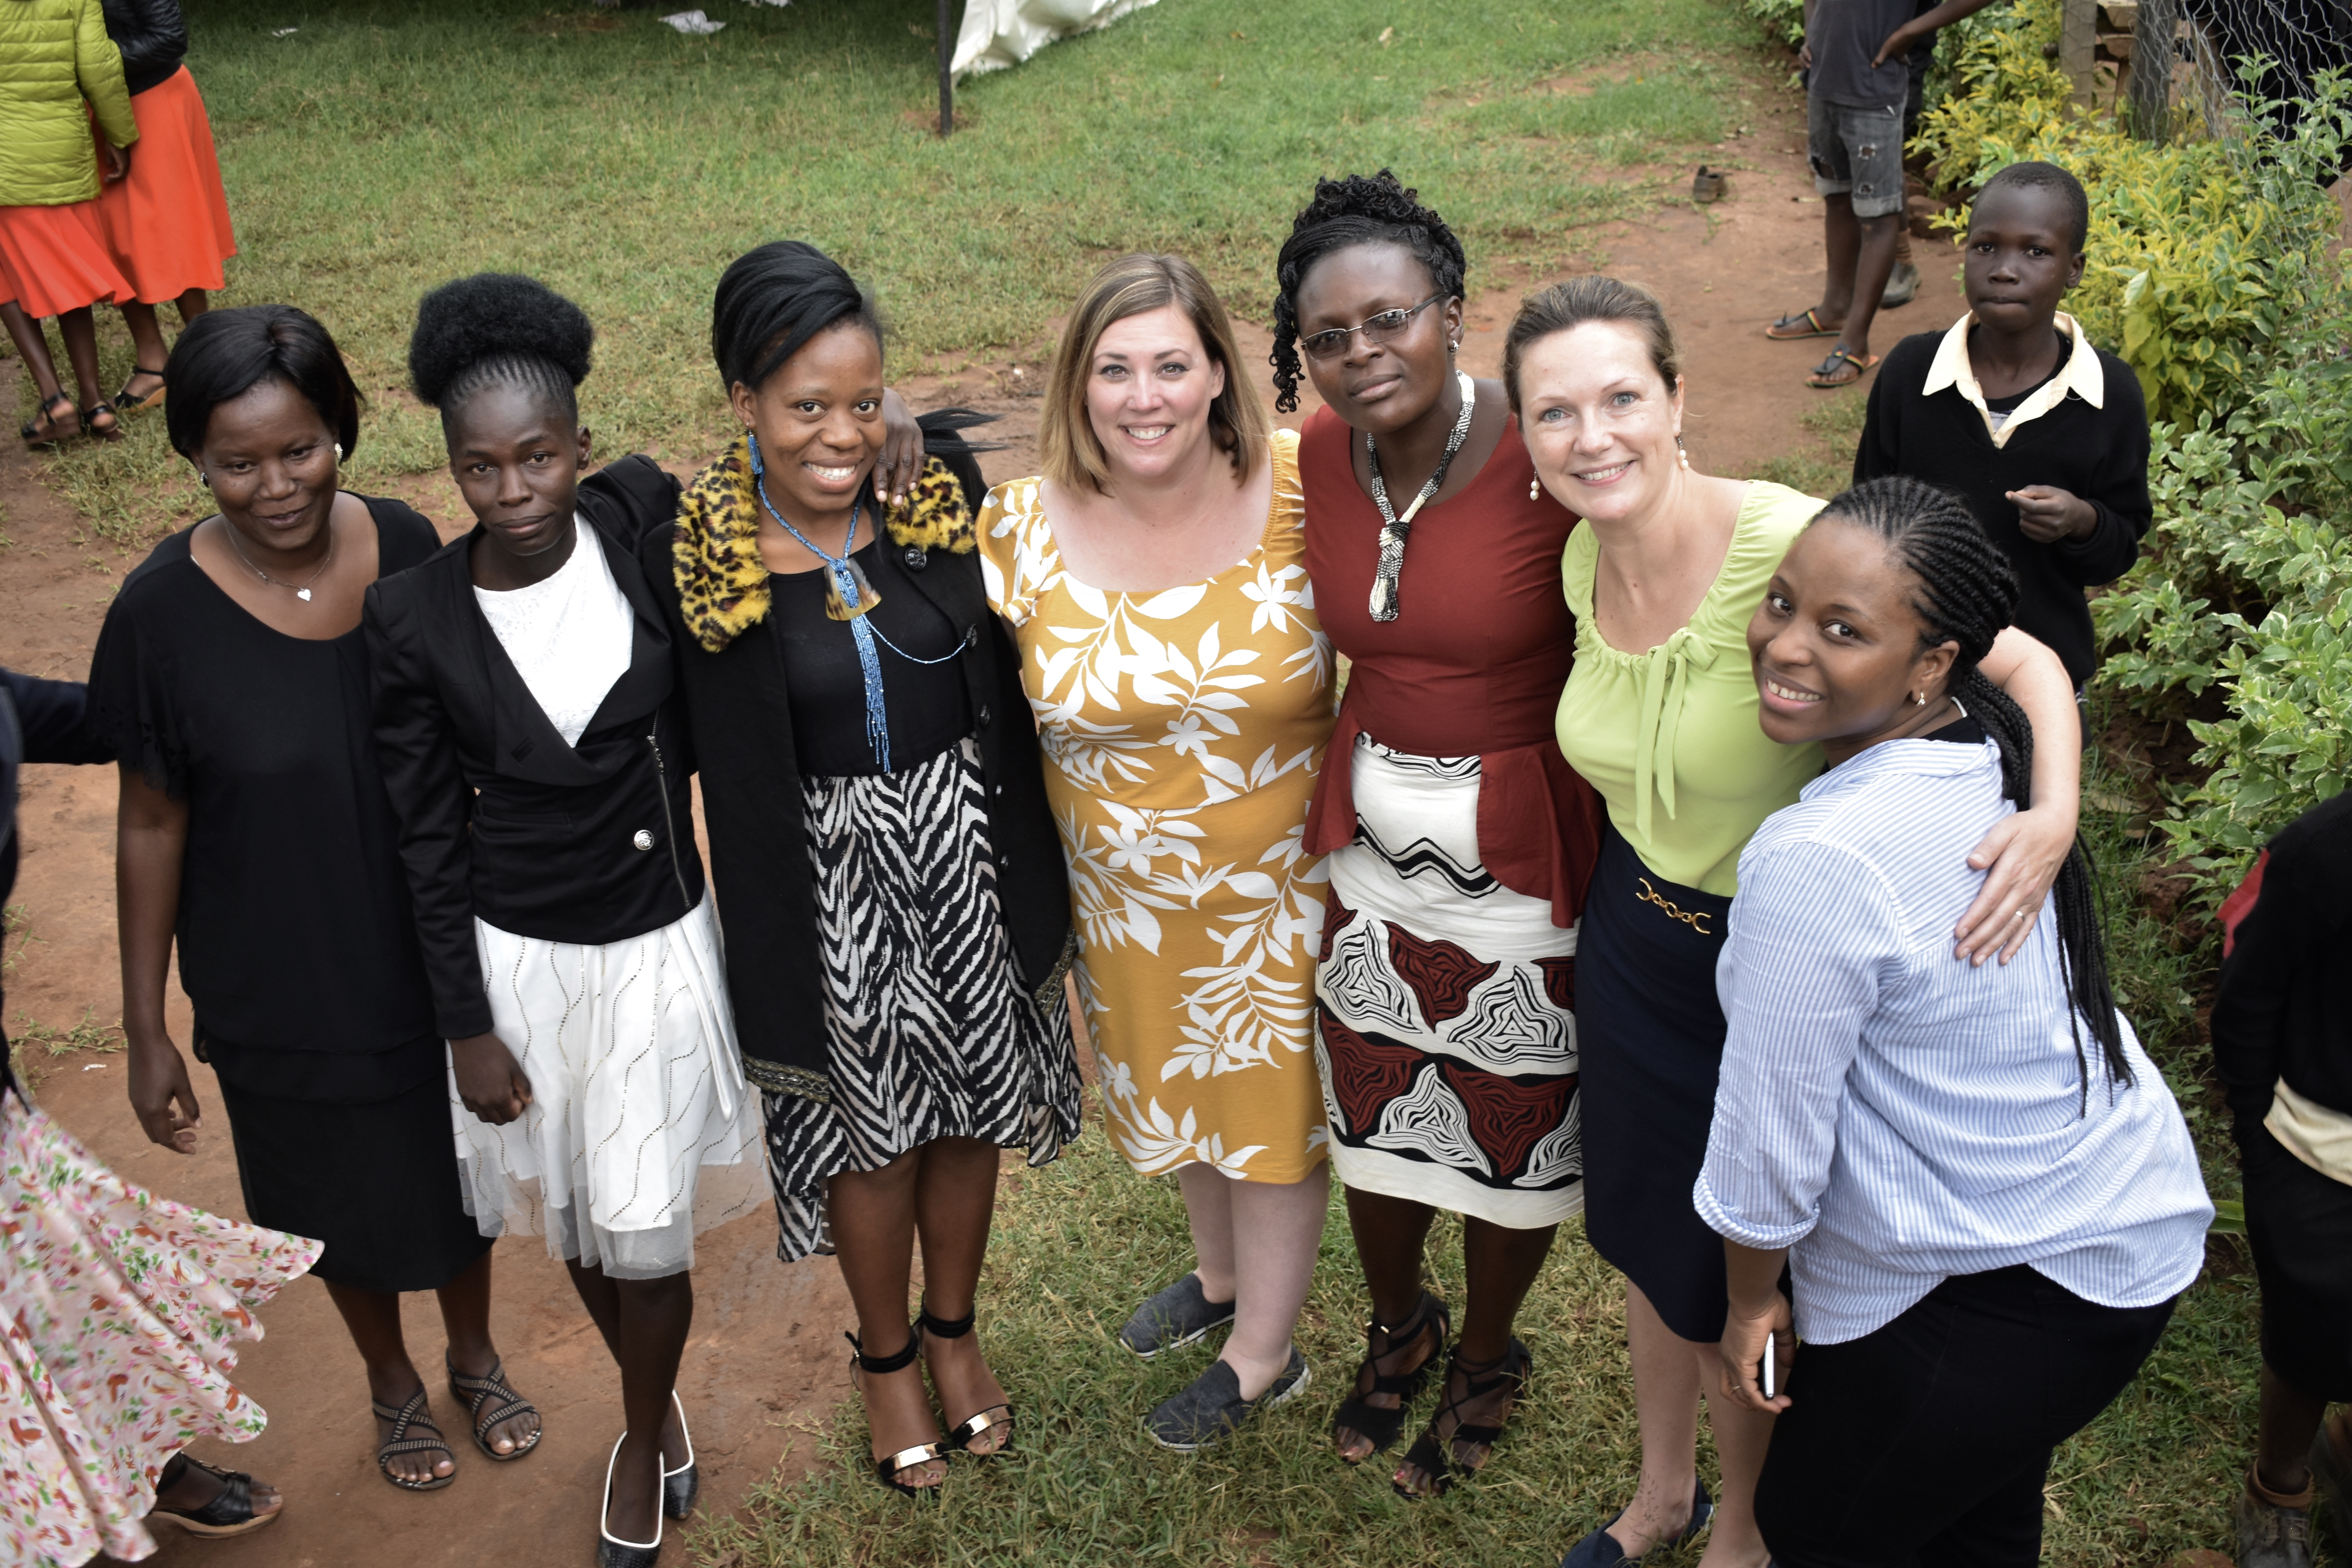 Michelle Falter, Ph.D., stands with teachers during professional development in Kenya.